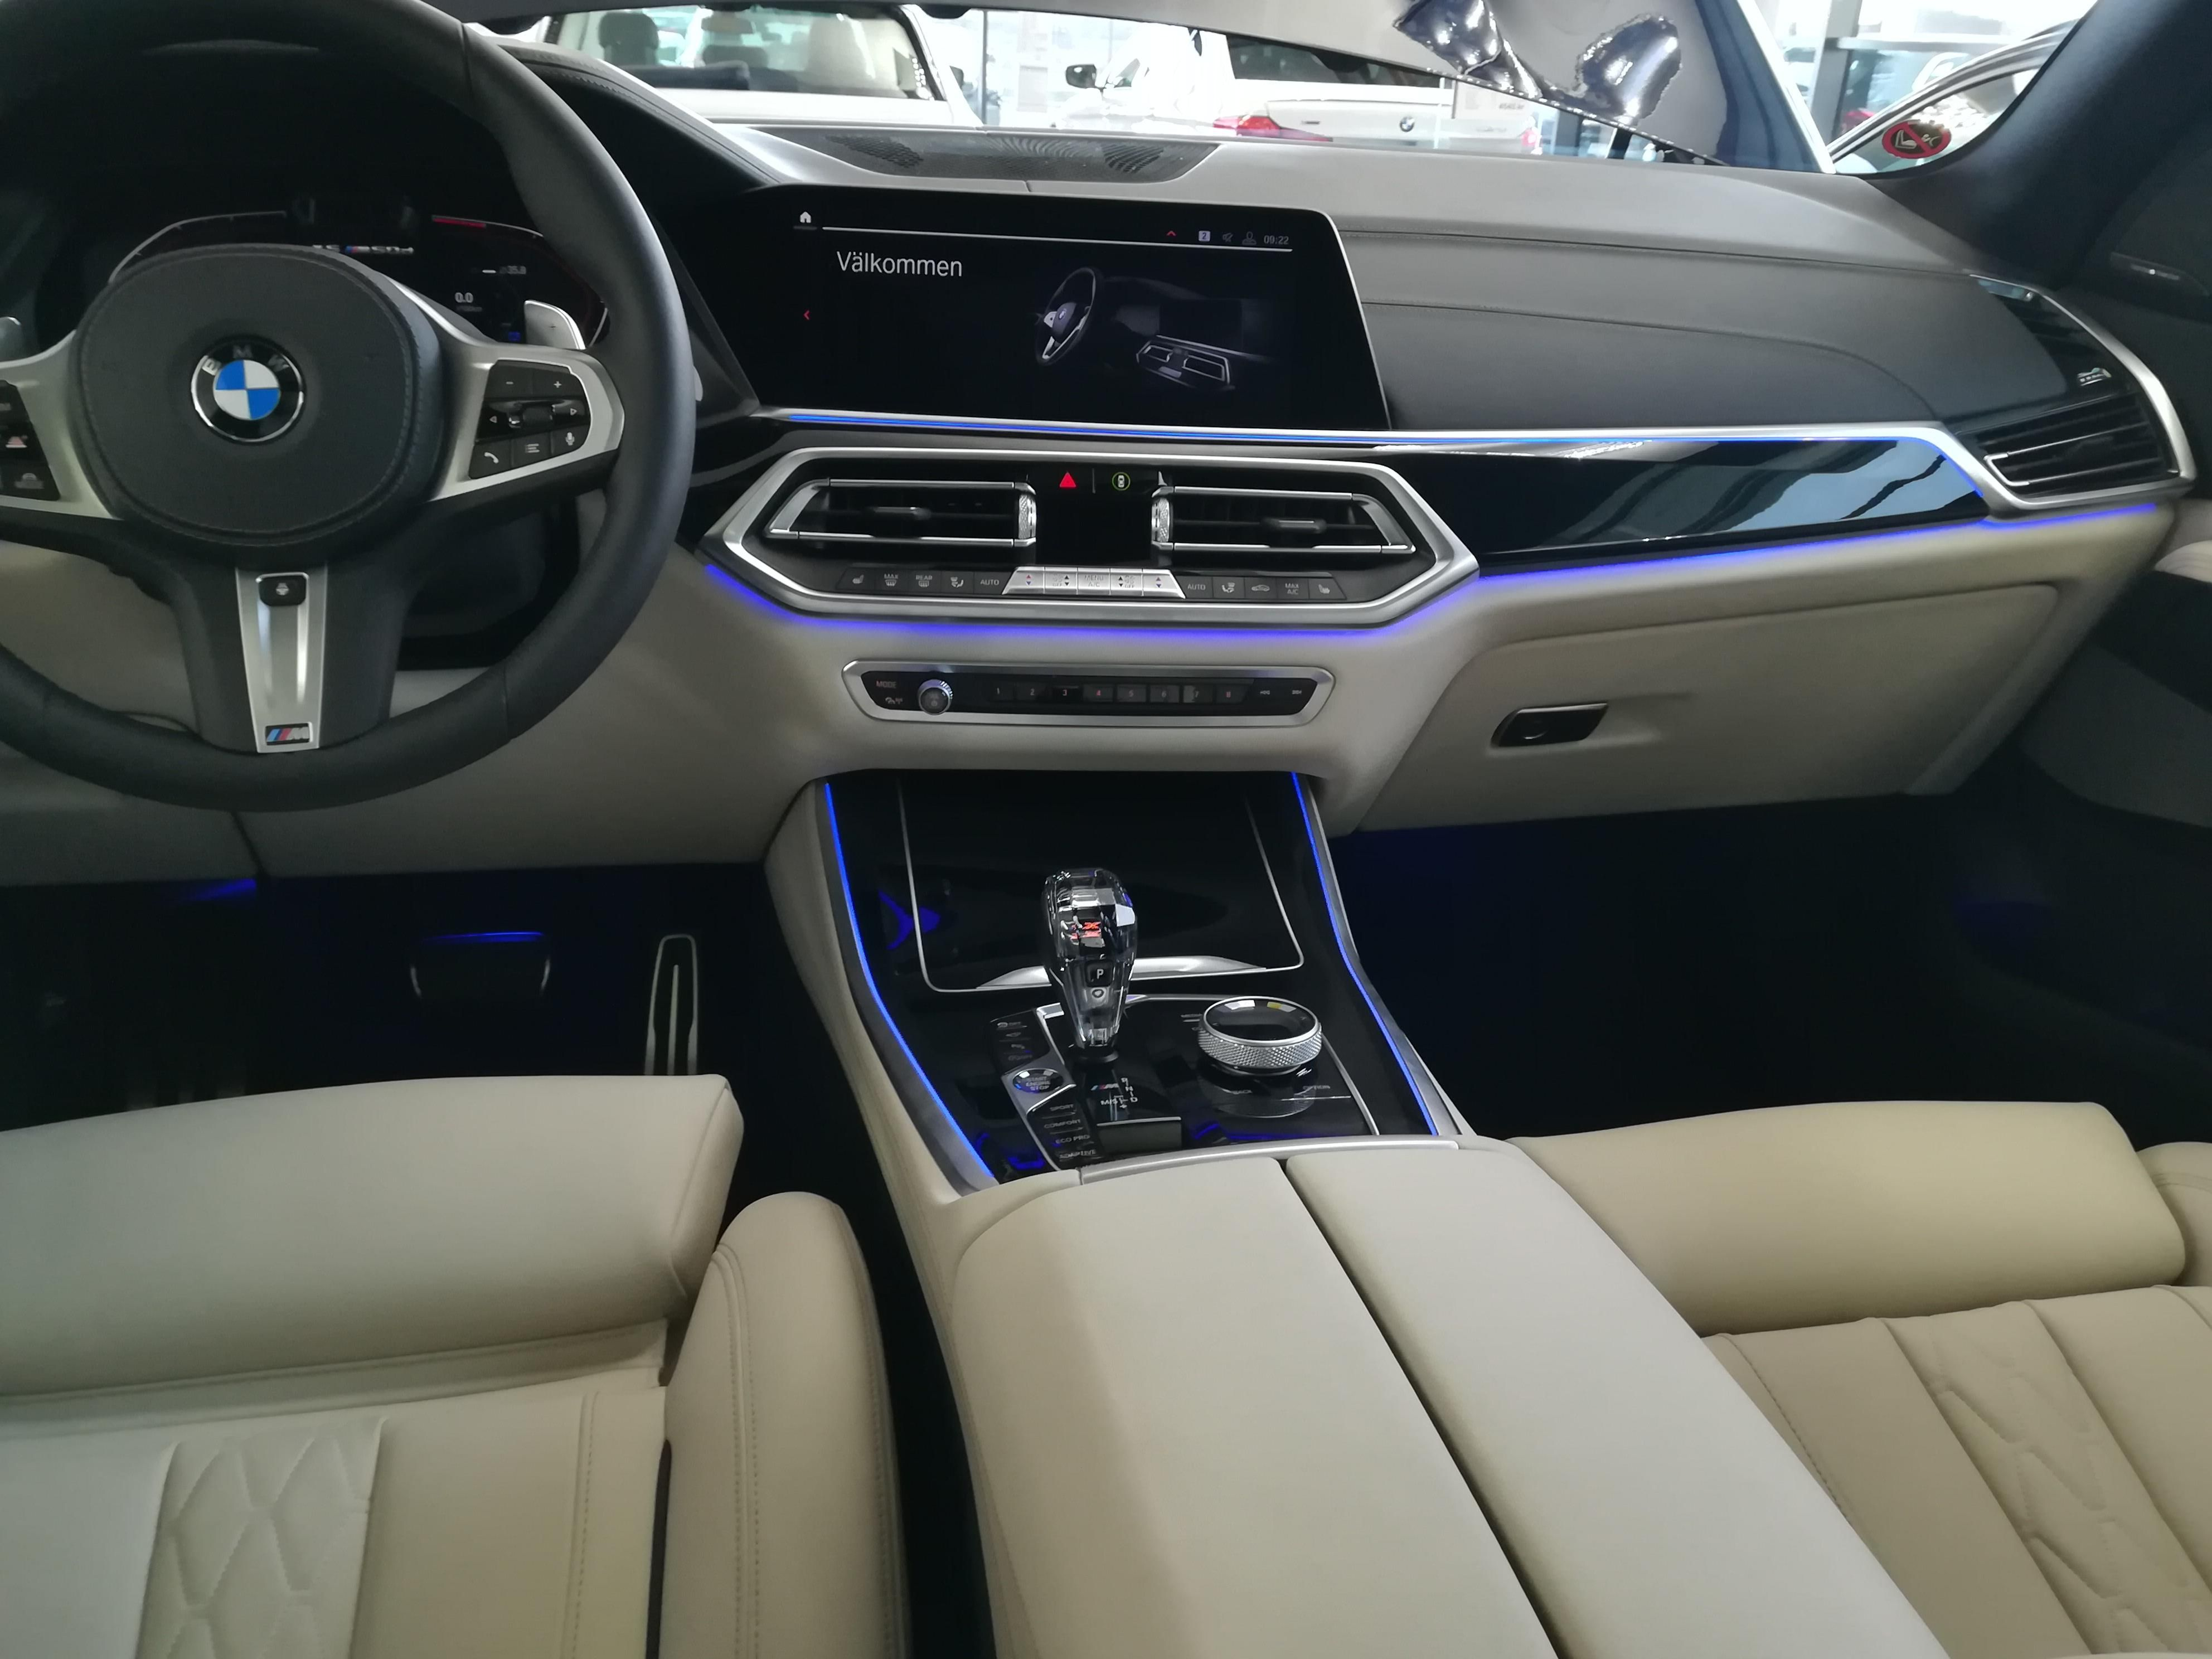 This Is My Favorite Bmw Interior 2019 Bmw X5 With All The Bells